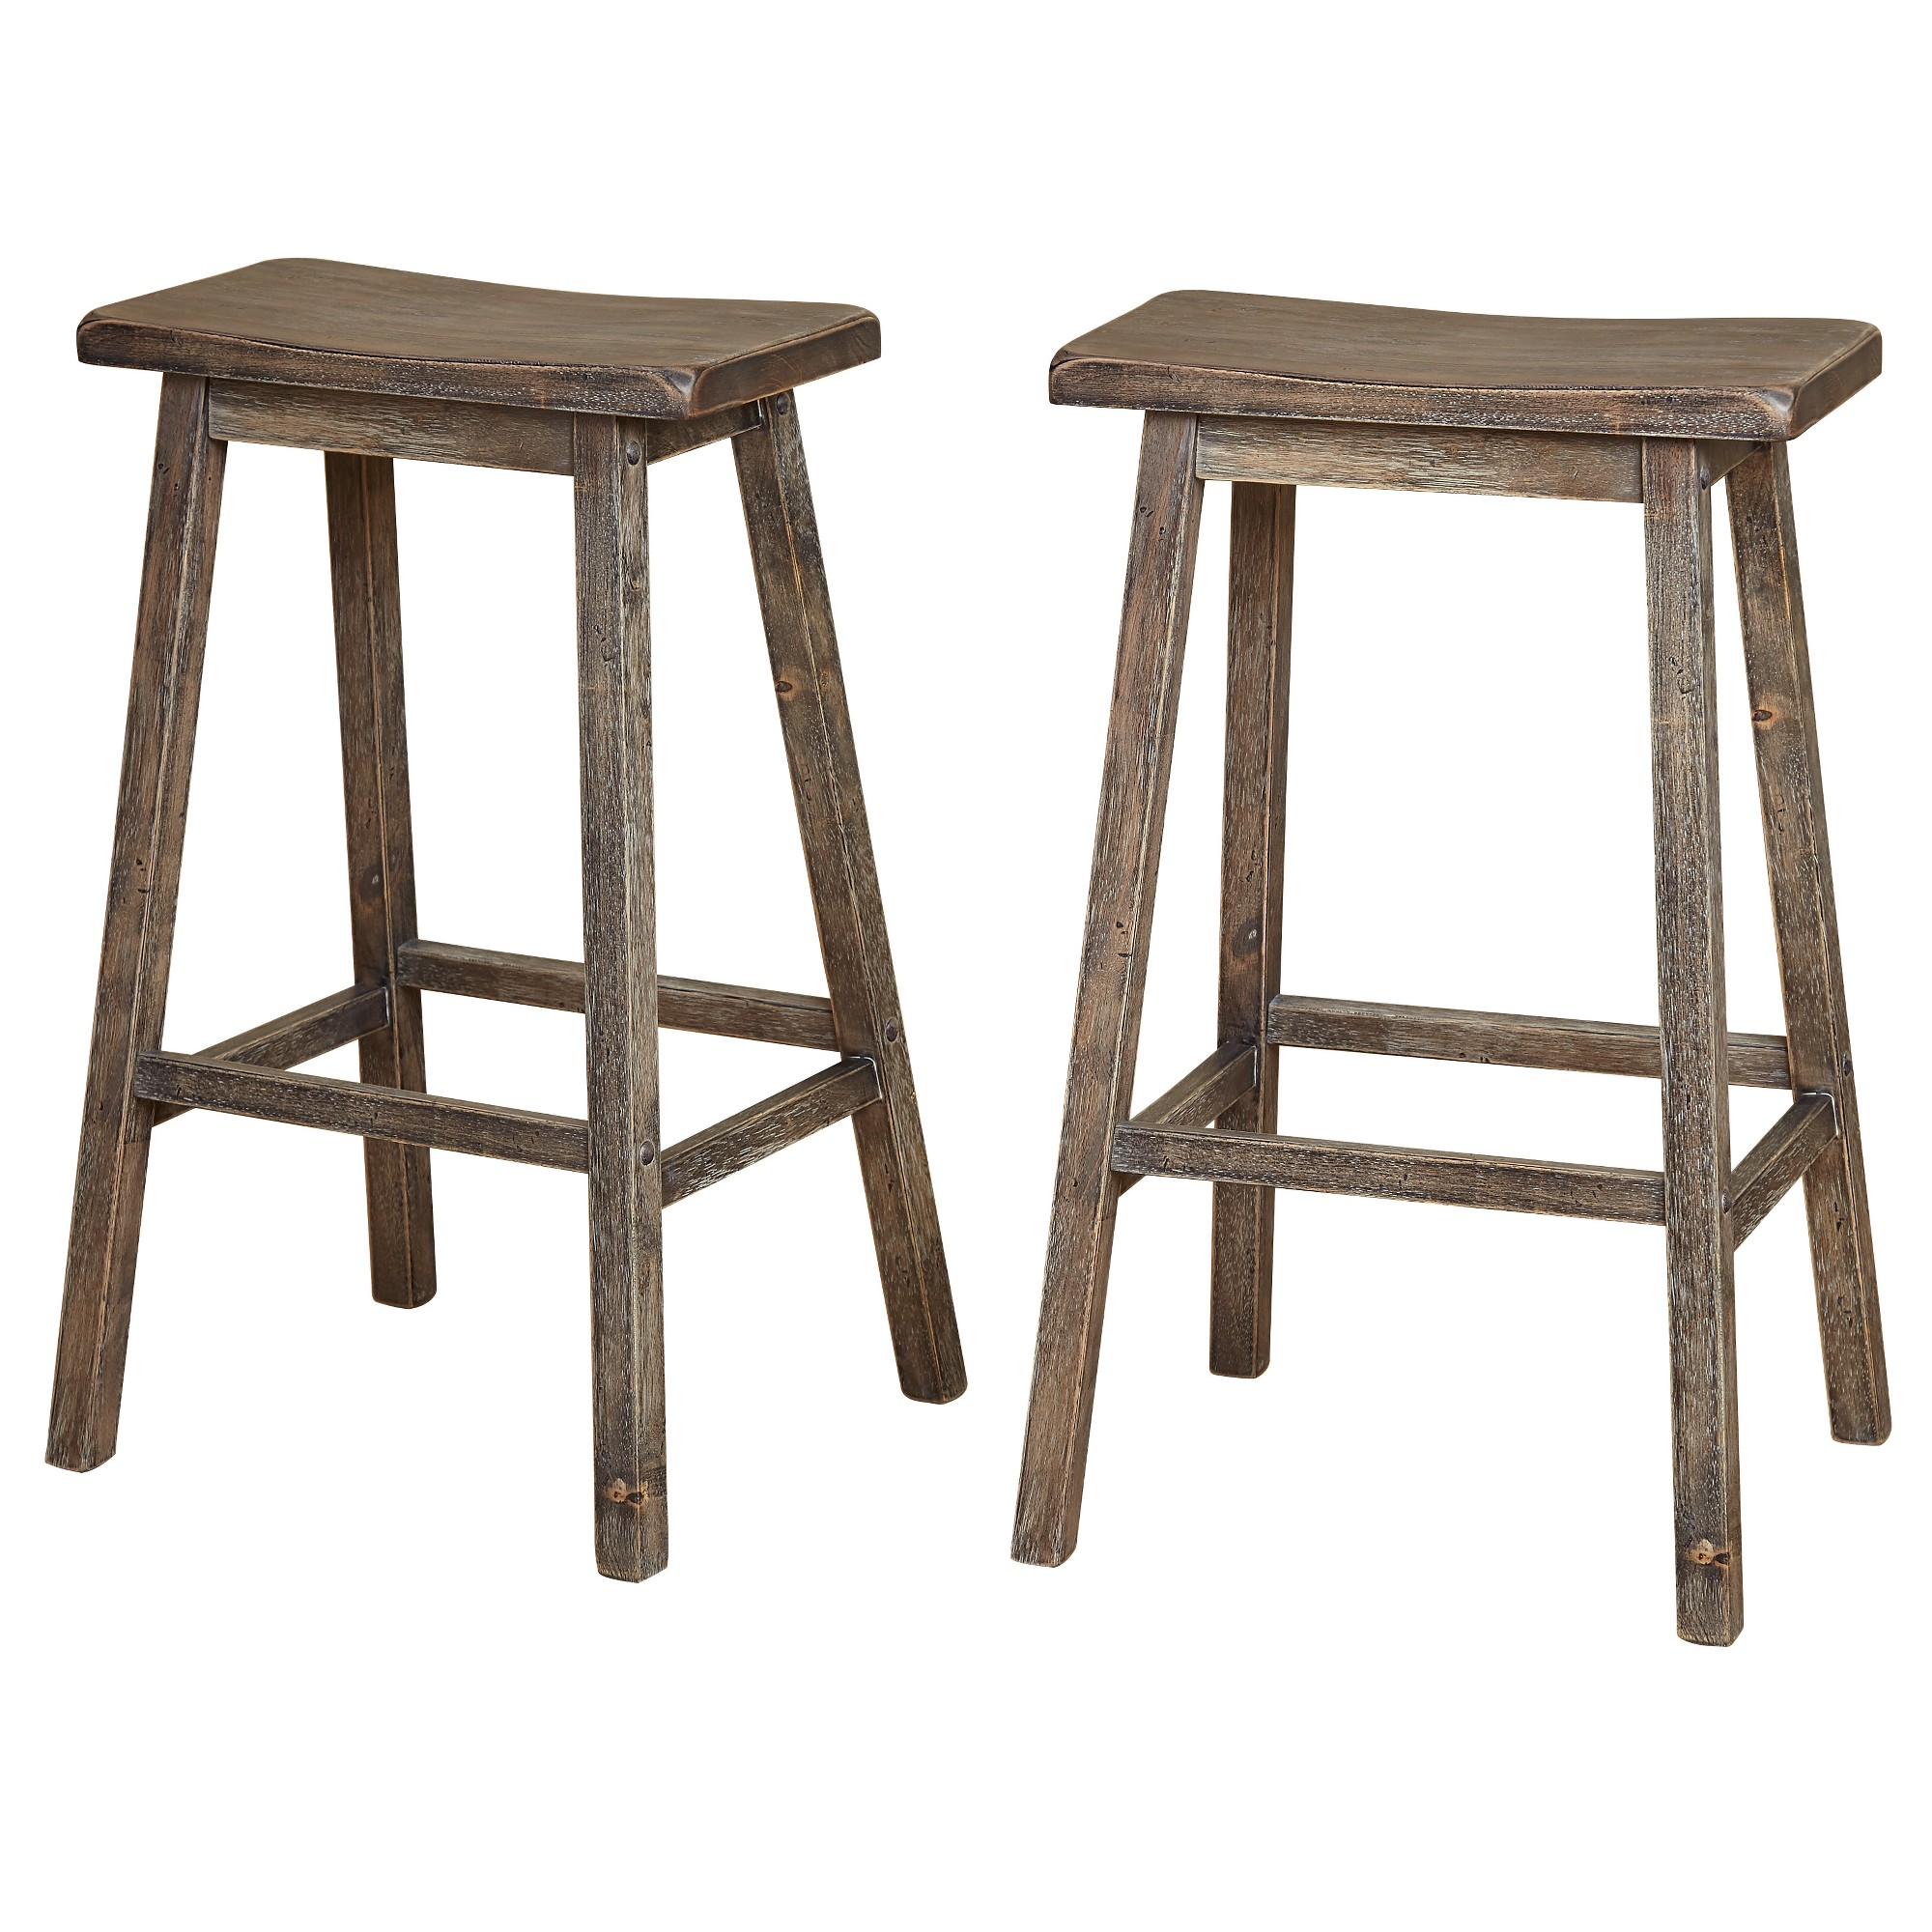 These 24 Inch High Padded Stools In White With Gray Upholstered